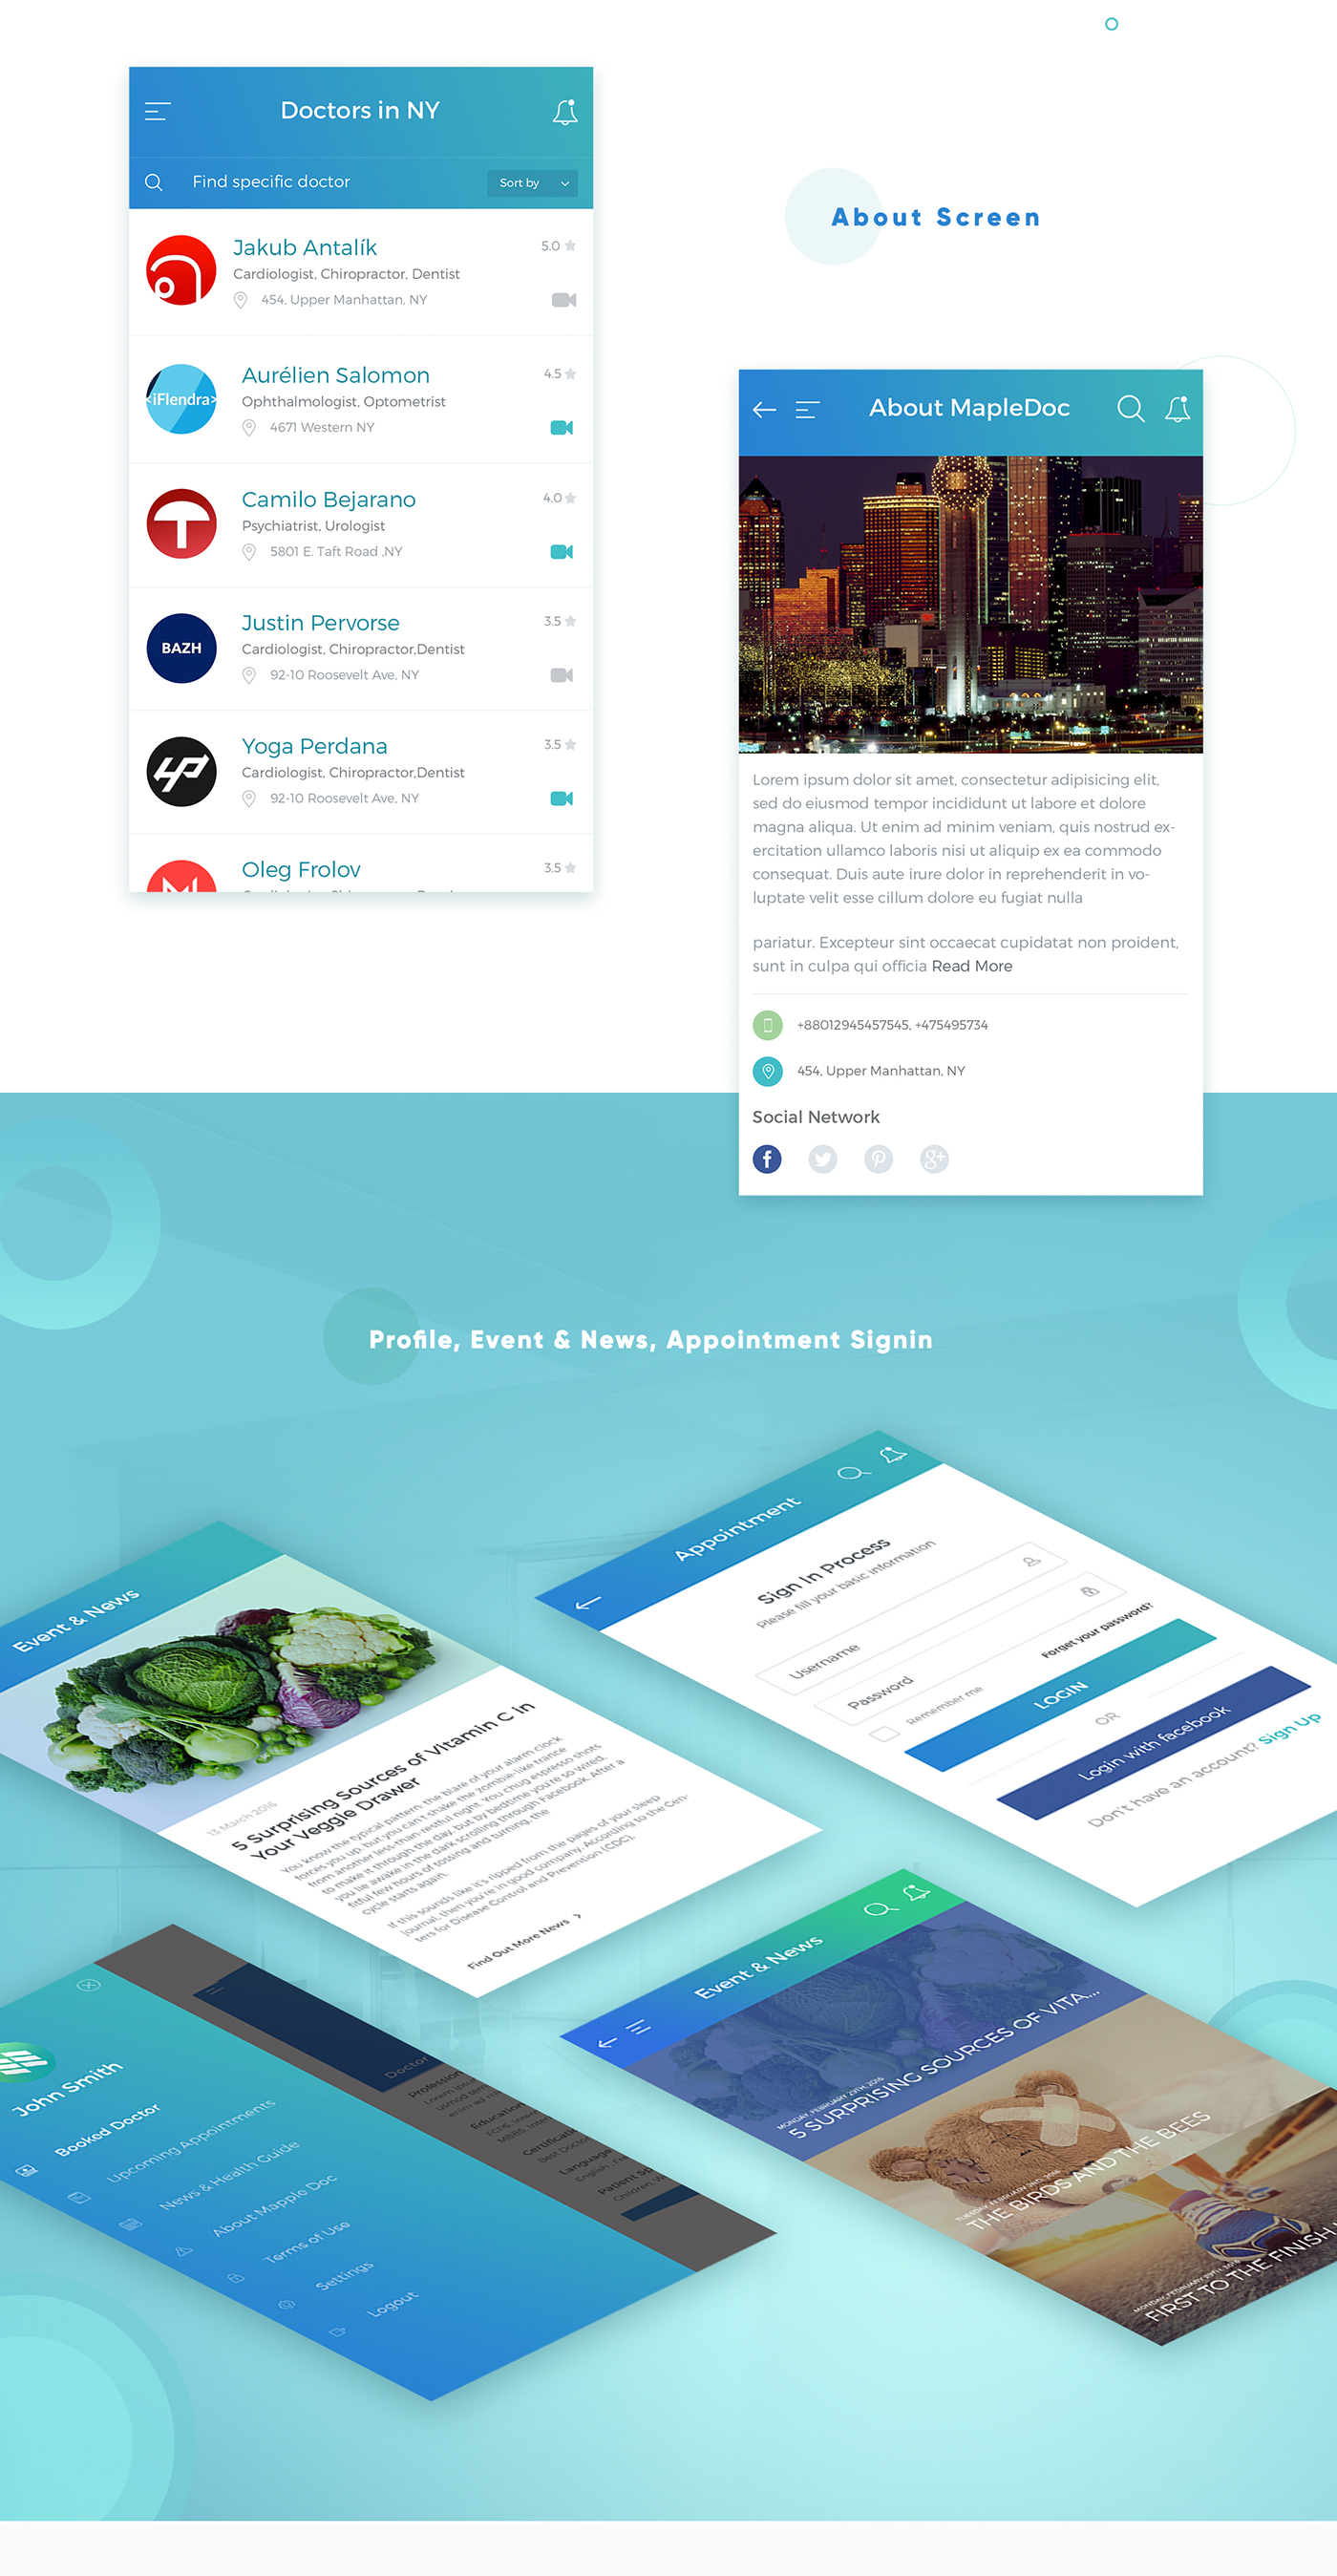 Medical/Healthcare Appointment App (iOS/Android) on Behance